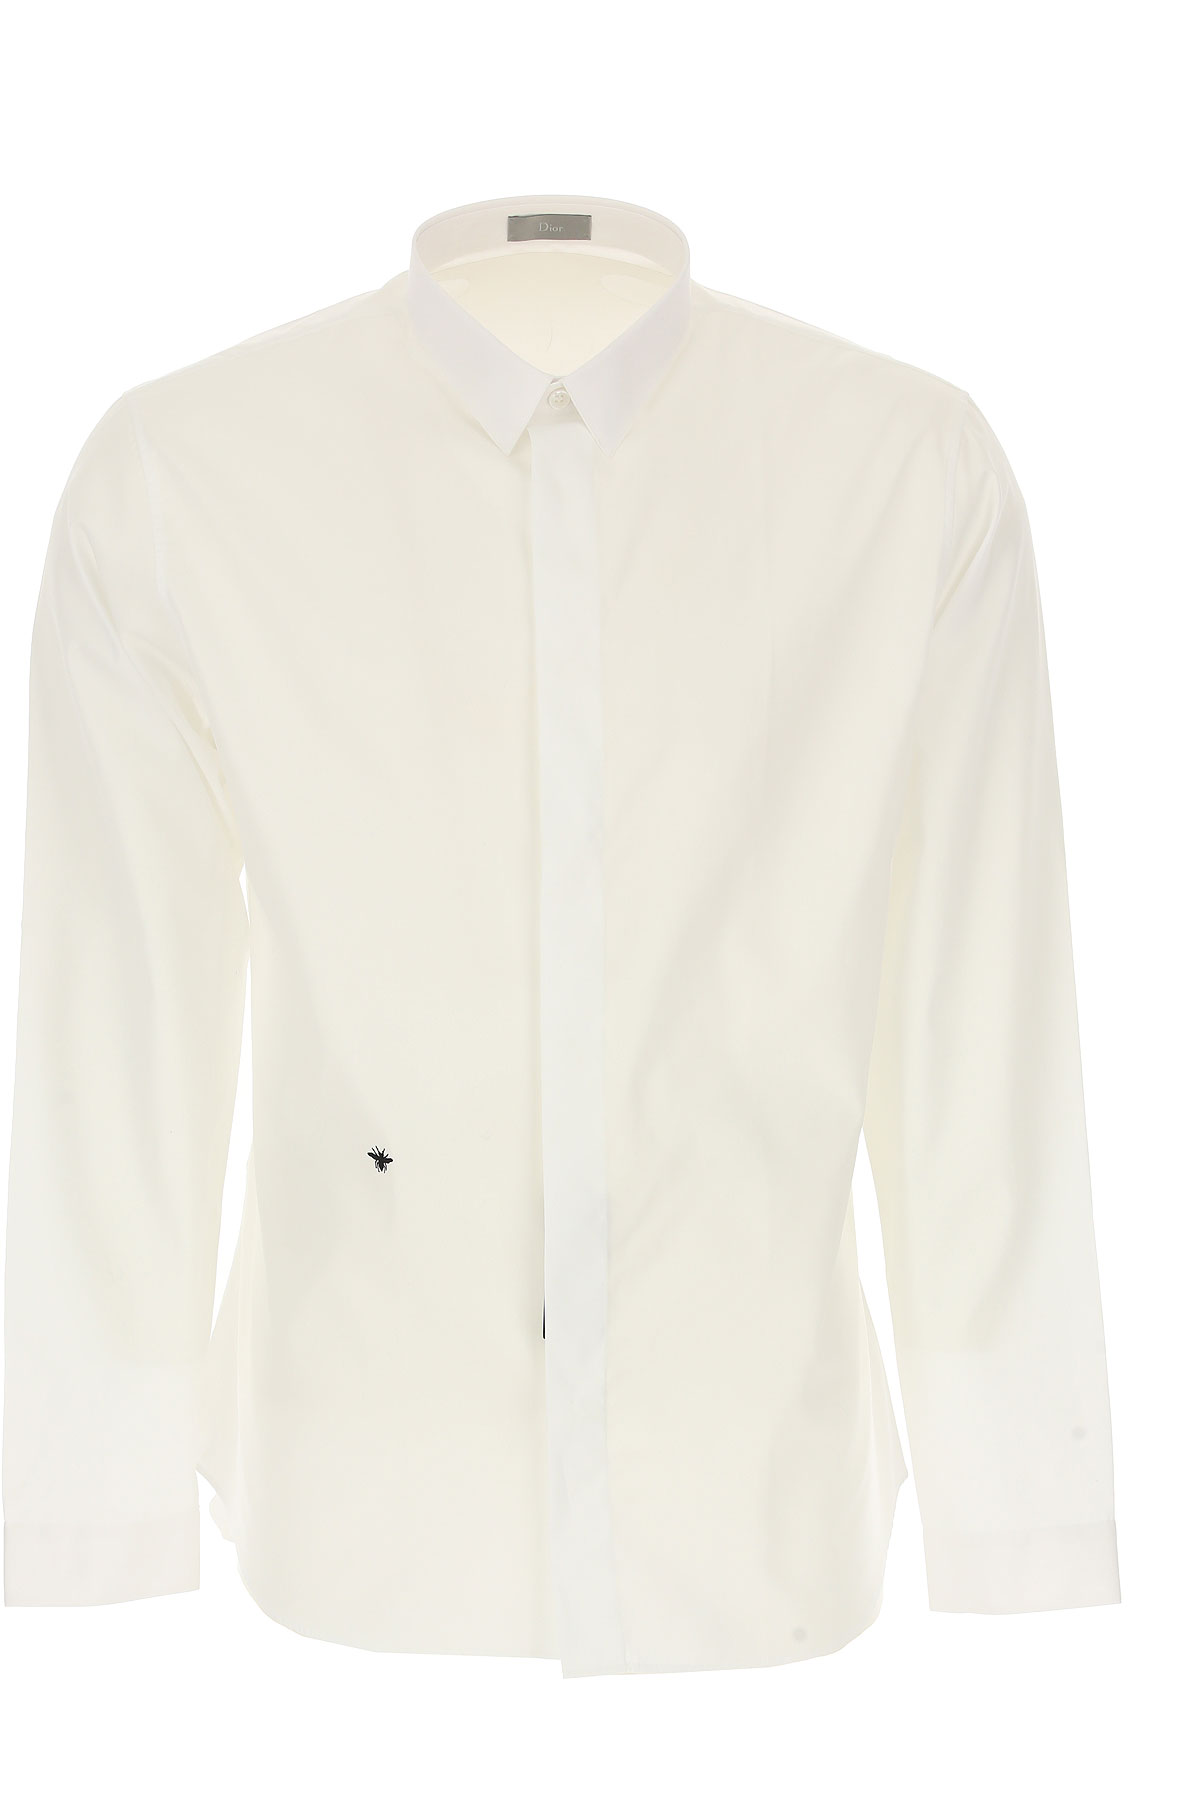 Christian Dior Chemise Homme, Blanc, Coton, 2017, 39 41 42